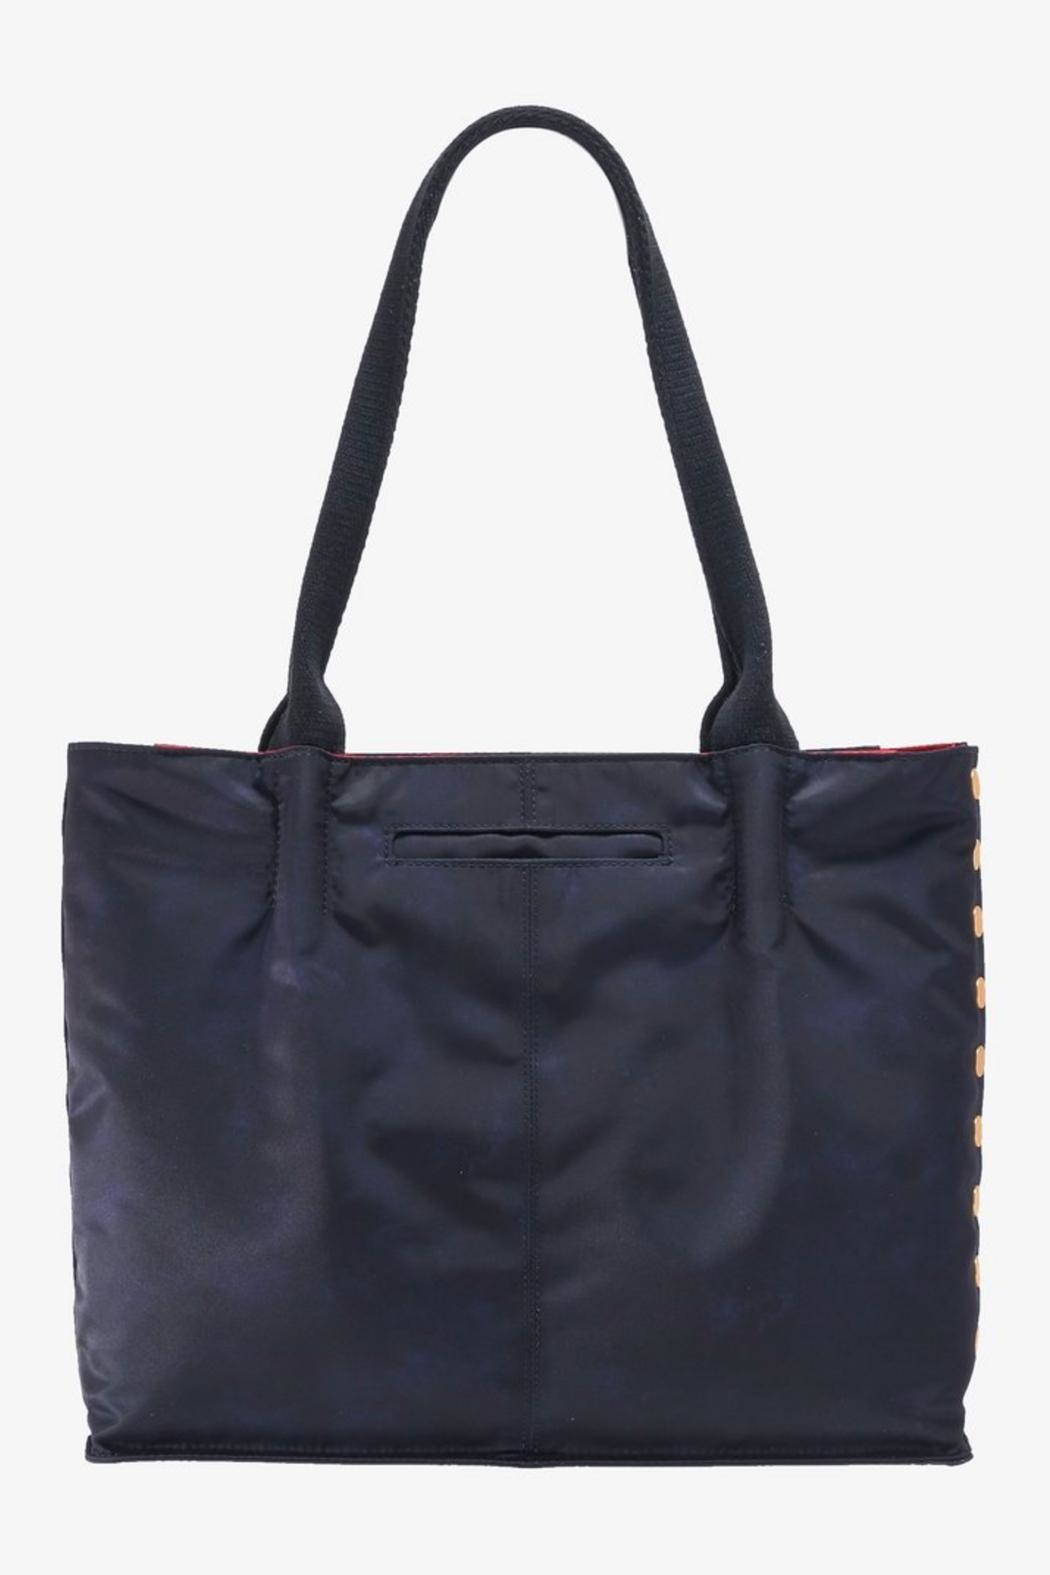 Hammitt Los Angeles Oliver Zippered Tote - Front Full Image